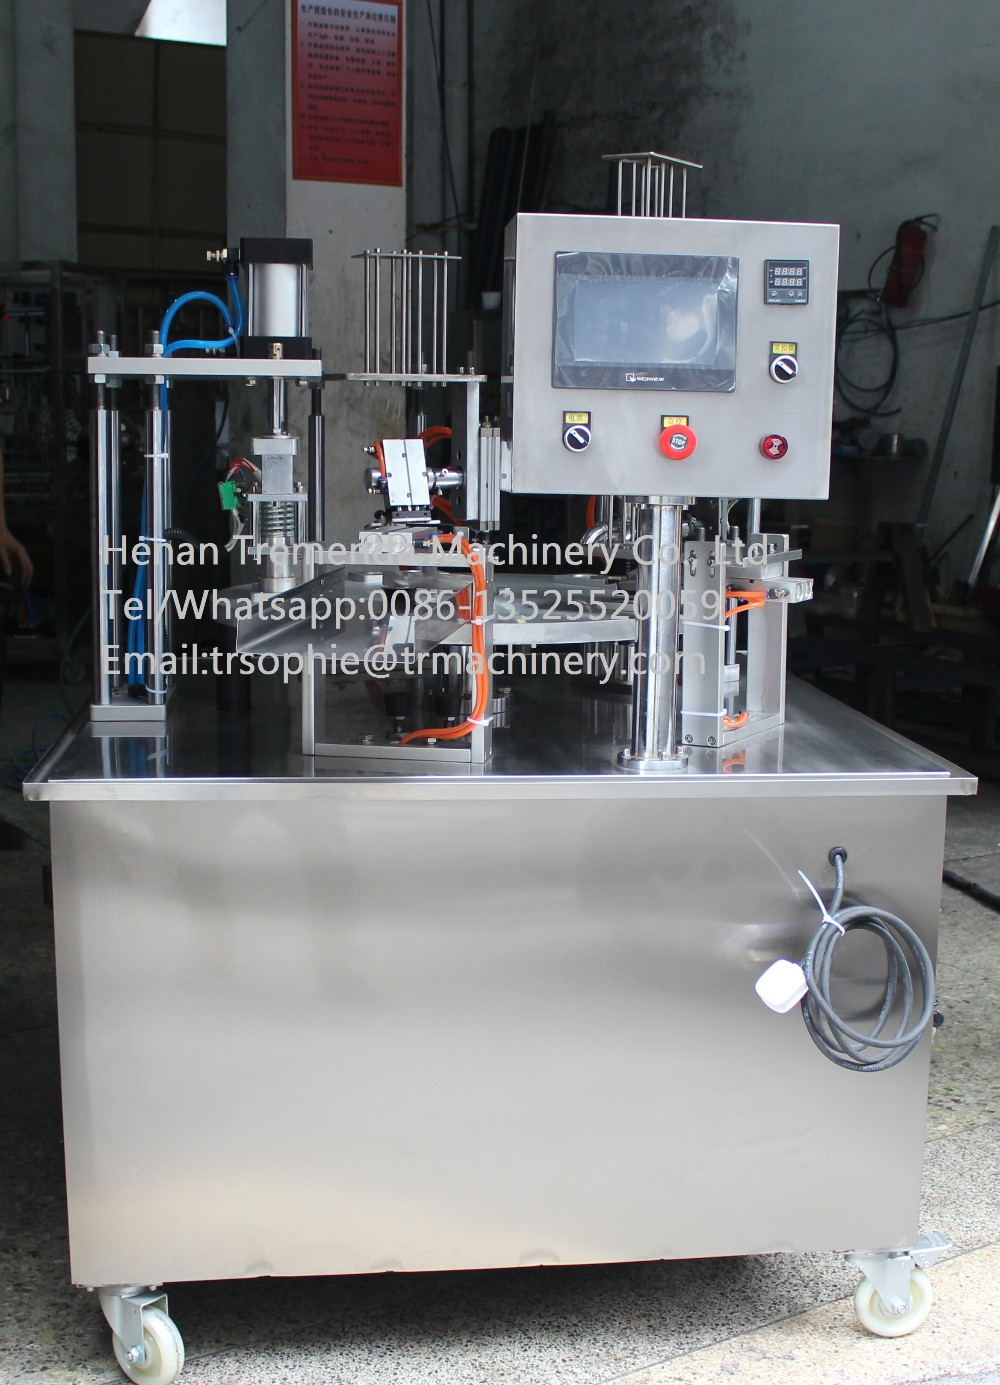 sealing machine for sale